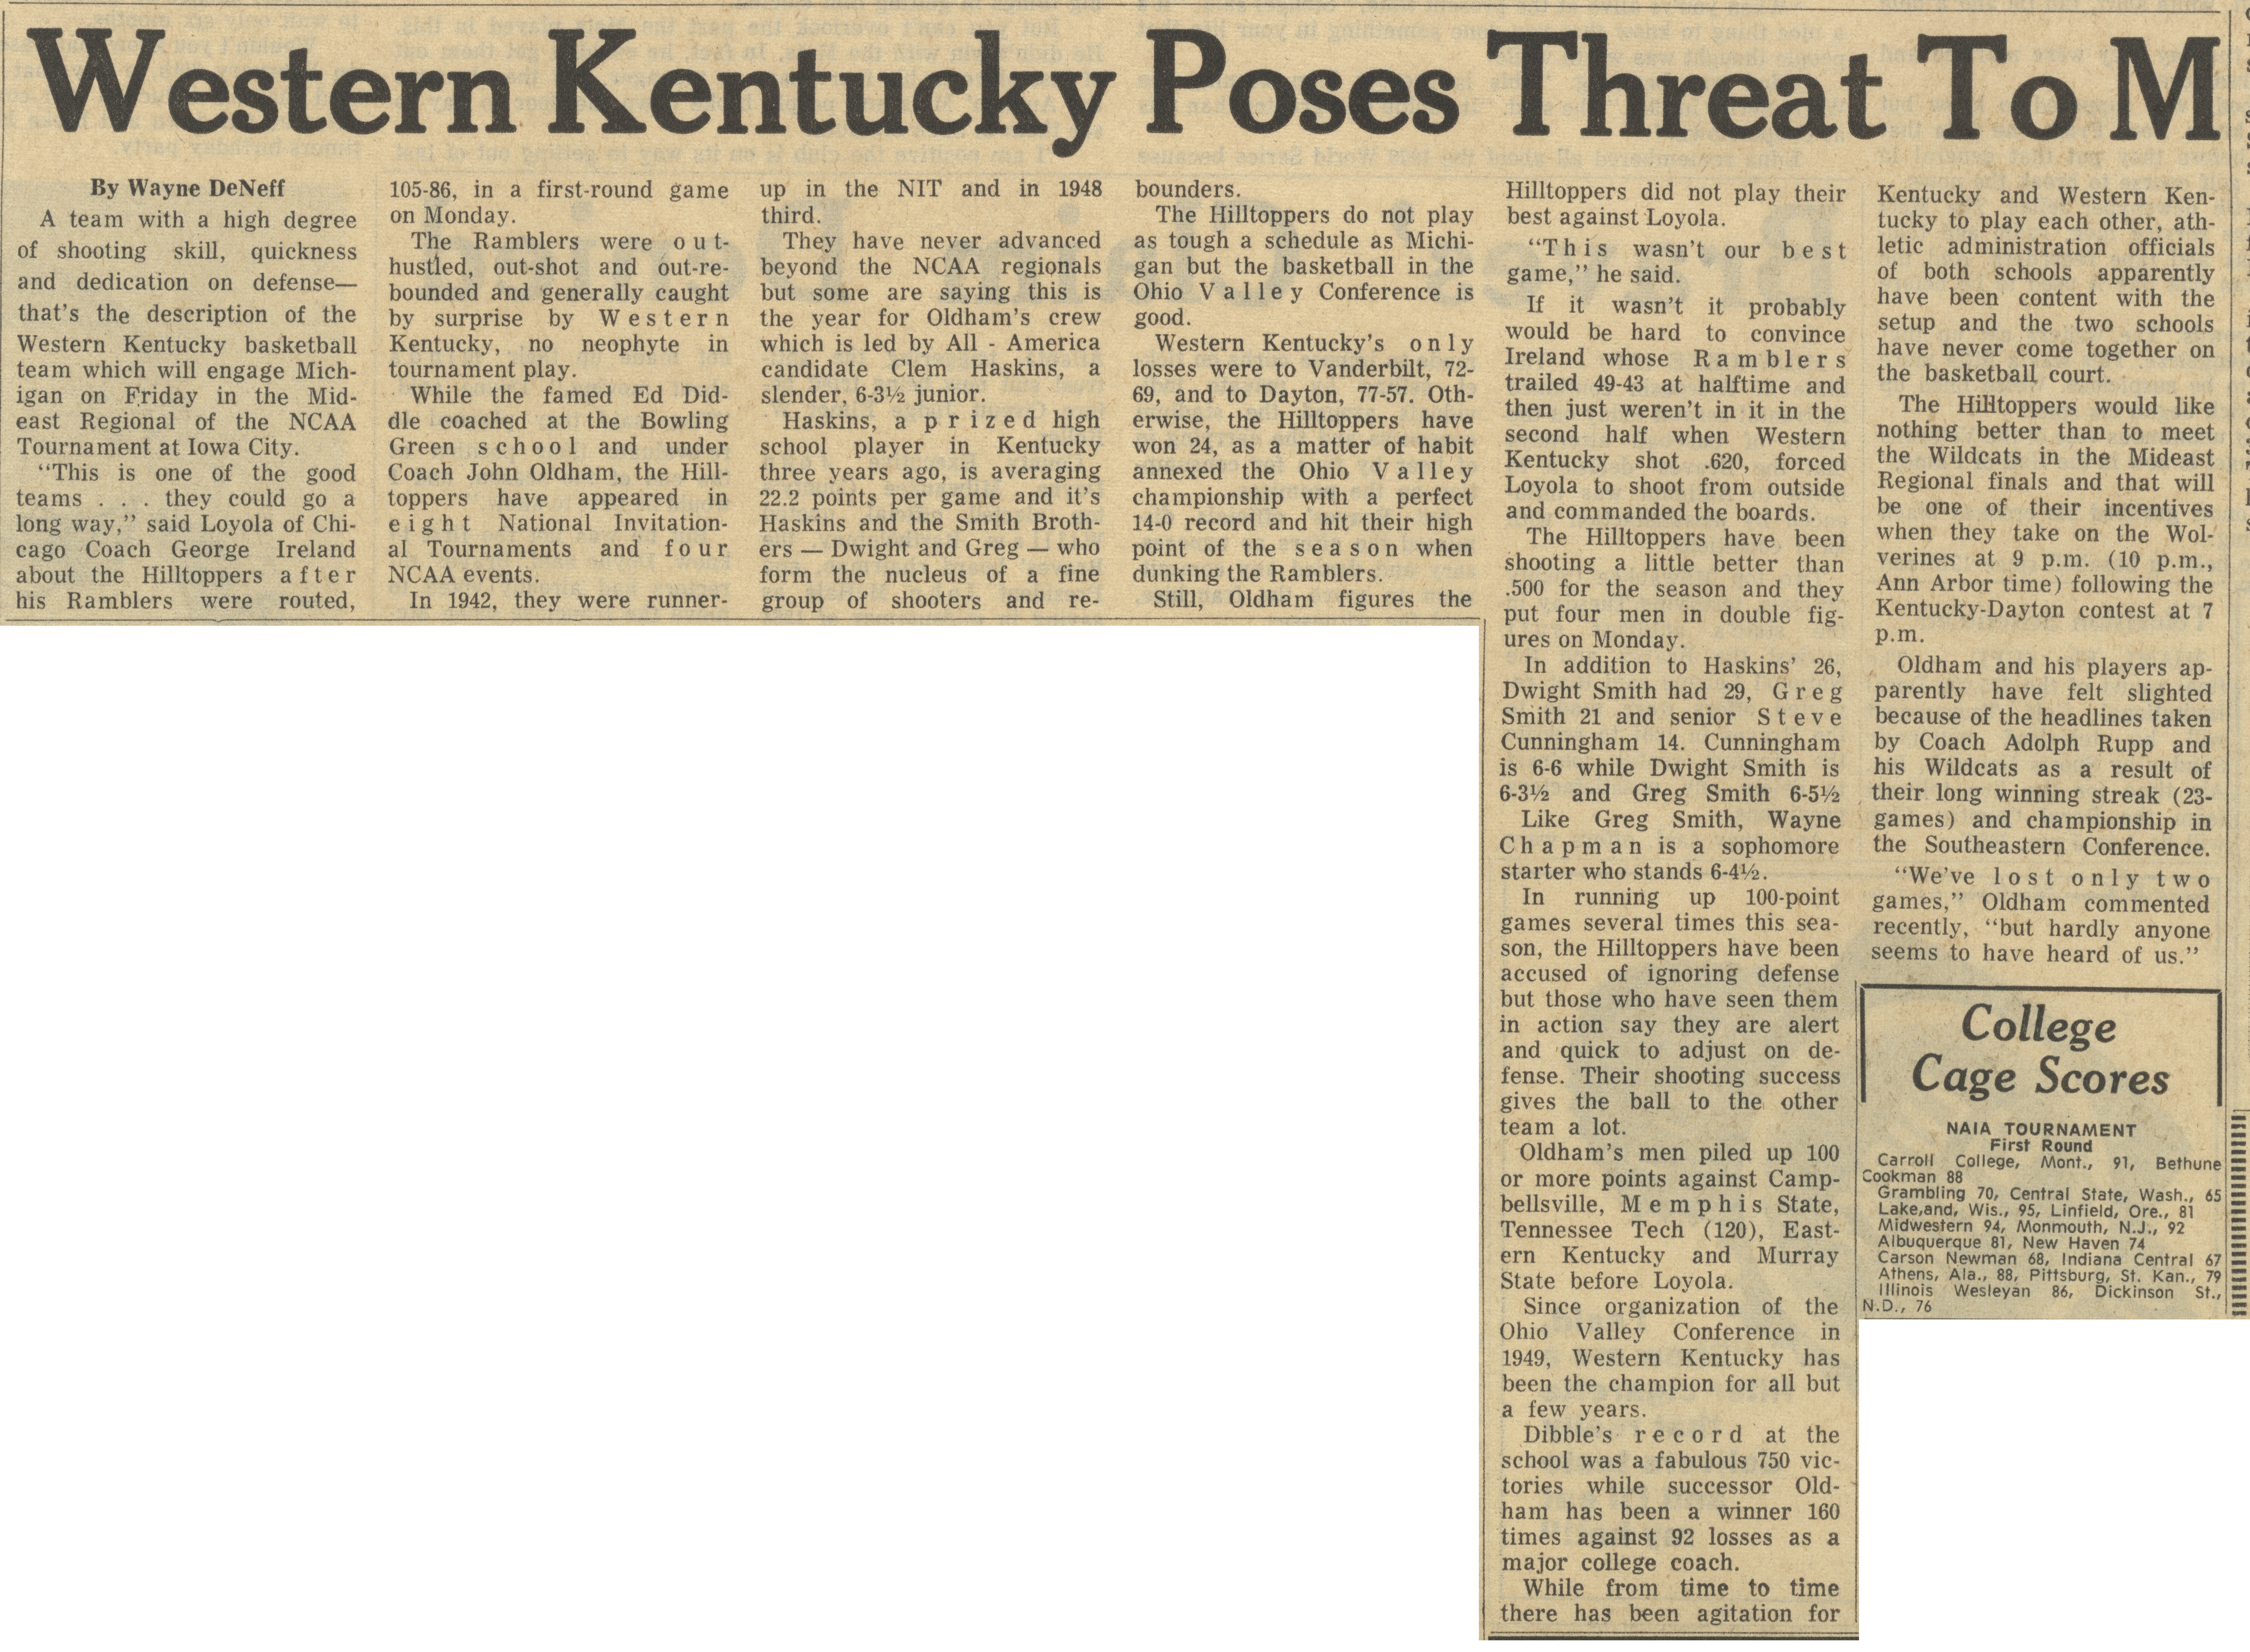 Western Kentucky Poses Threat To M image